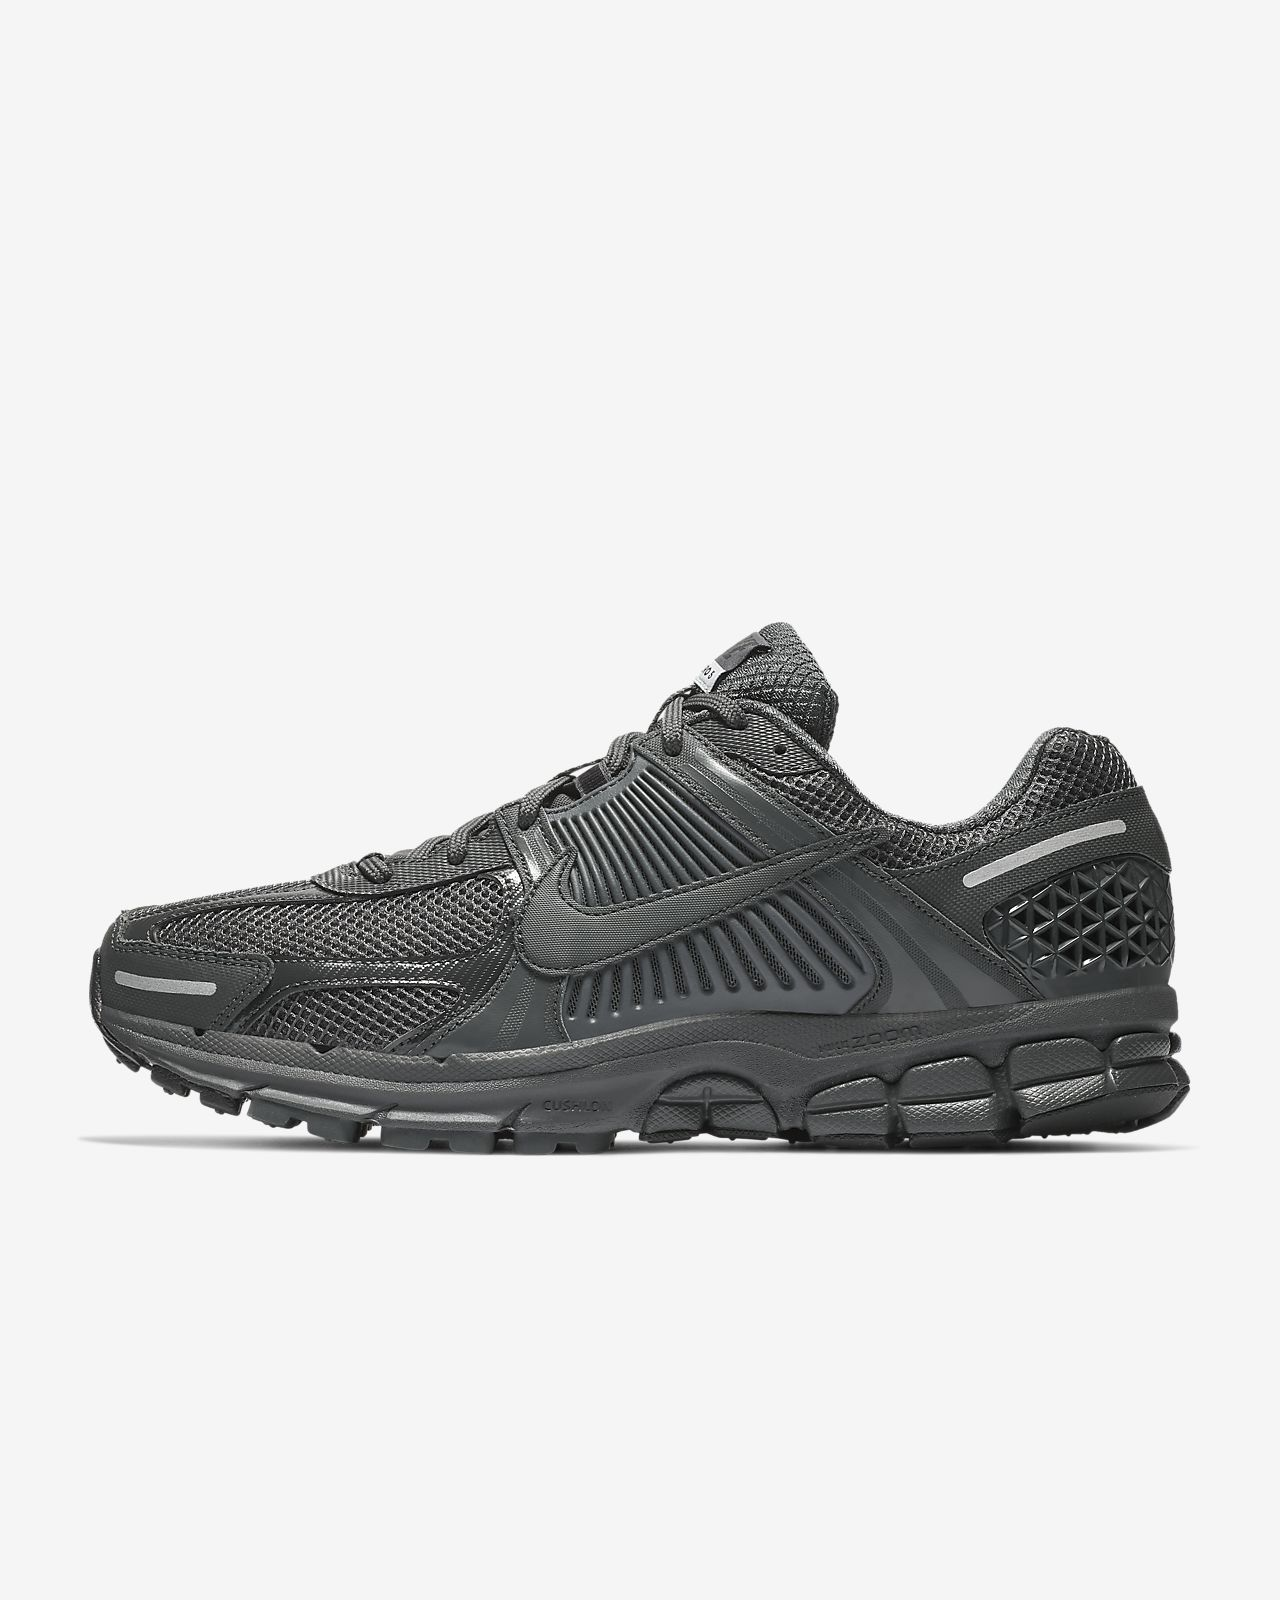 Nike Zoom Vomero 5 SP Men's Shoe